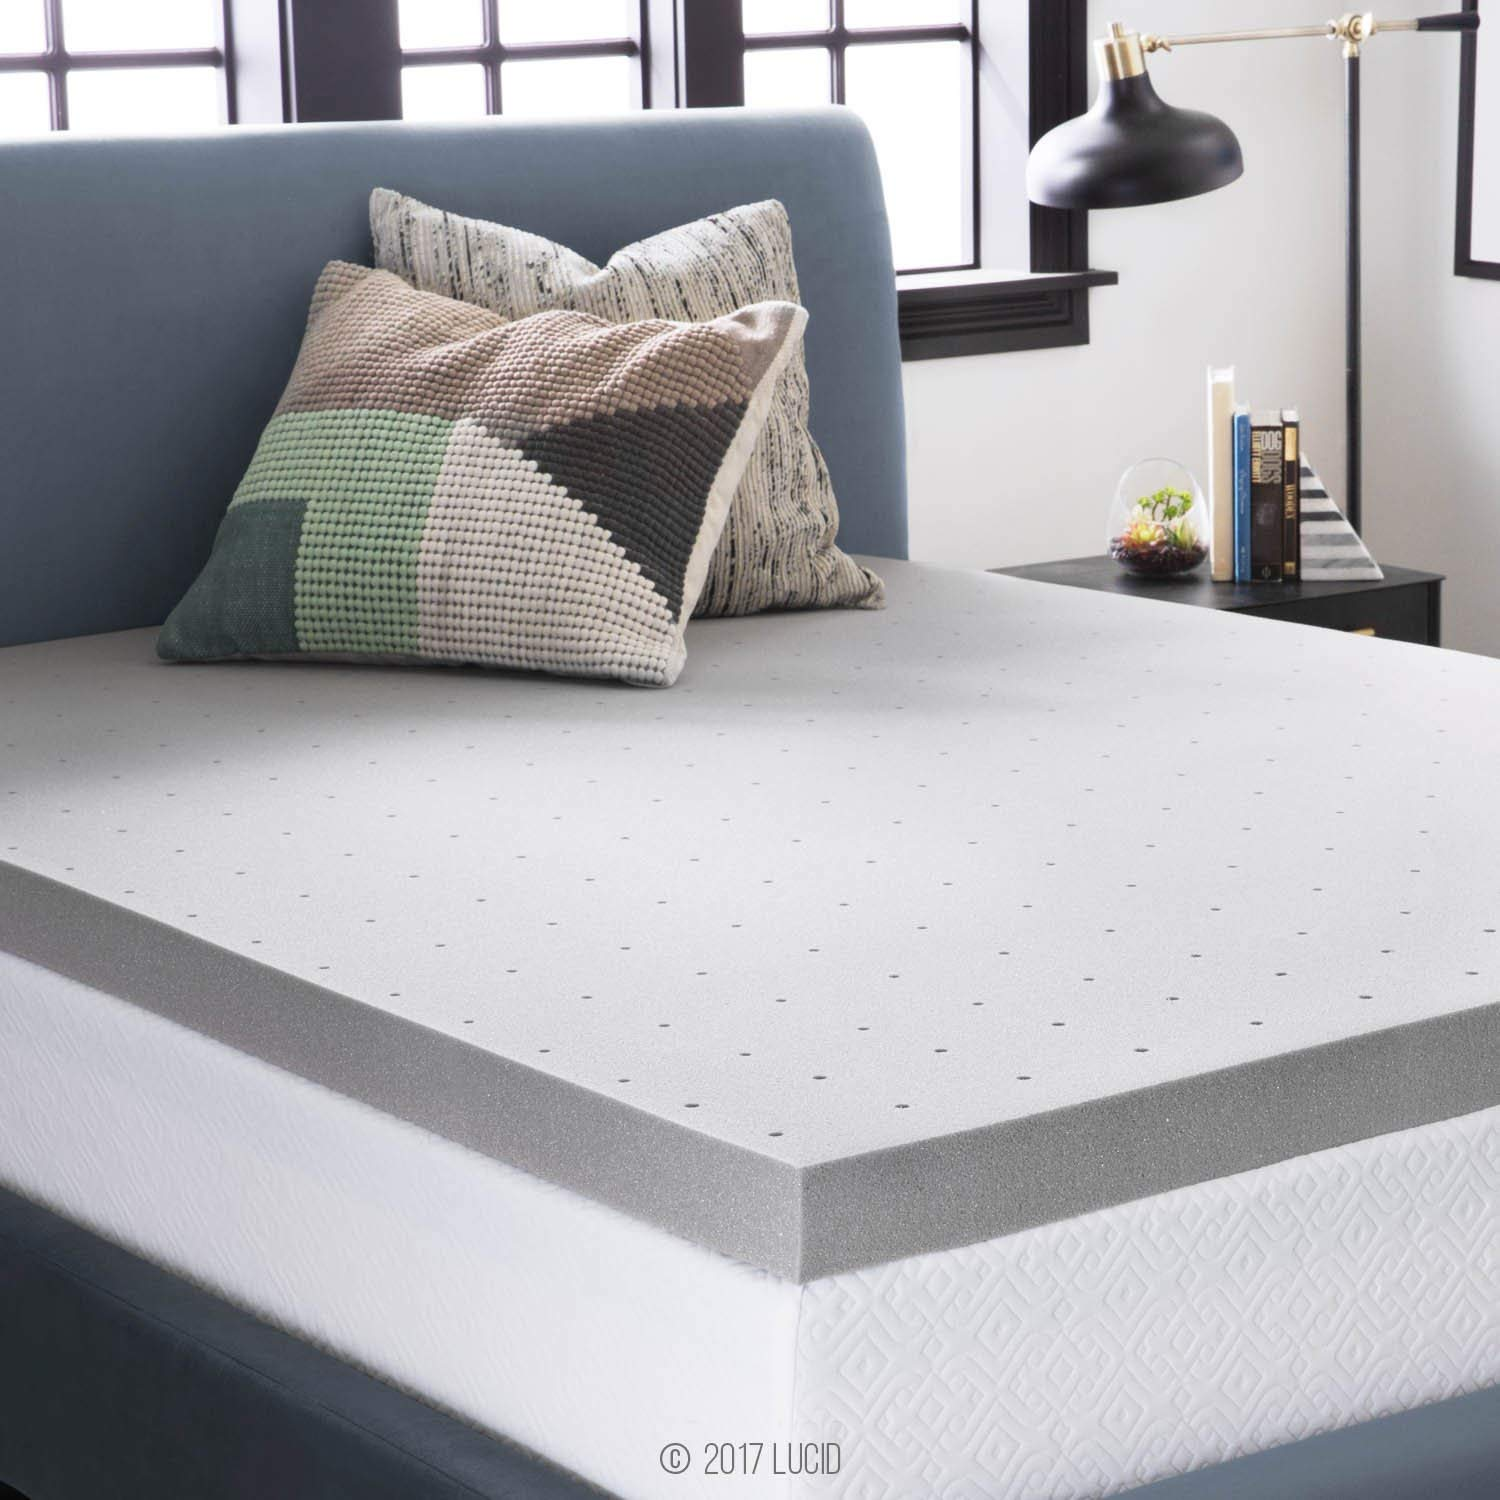 LUCID bamboo mattress topper review by www.dailysleep.org